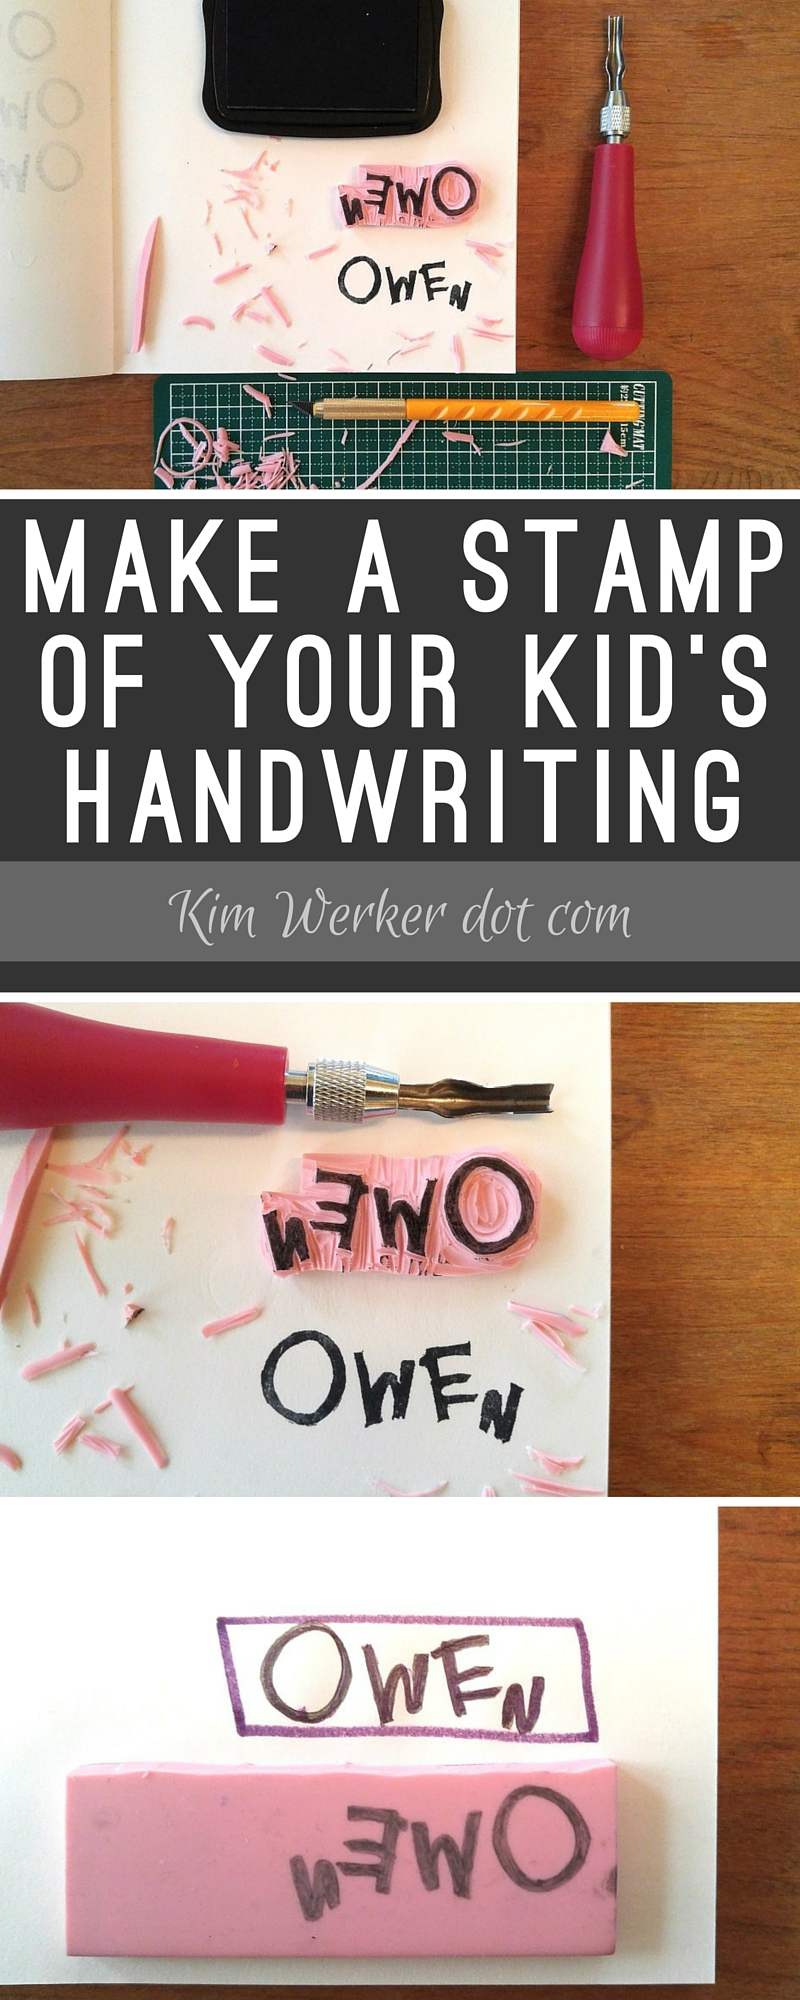 How To Make a Stamp of Your Kid's Handwriting